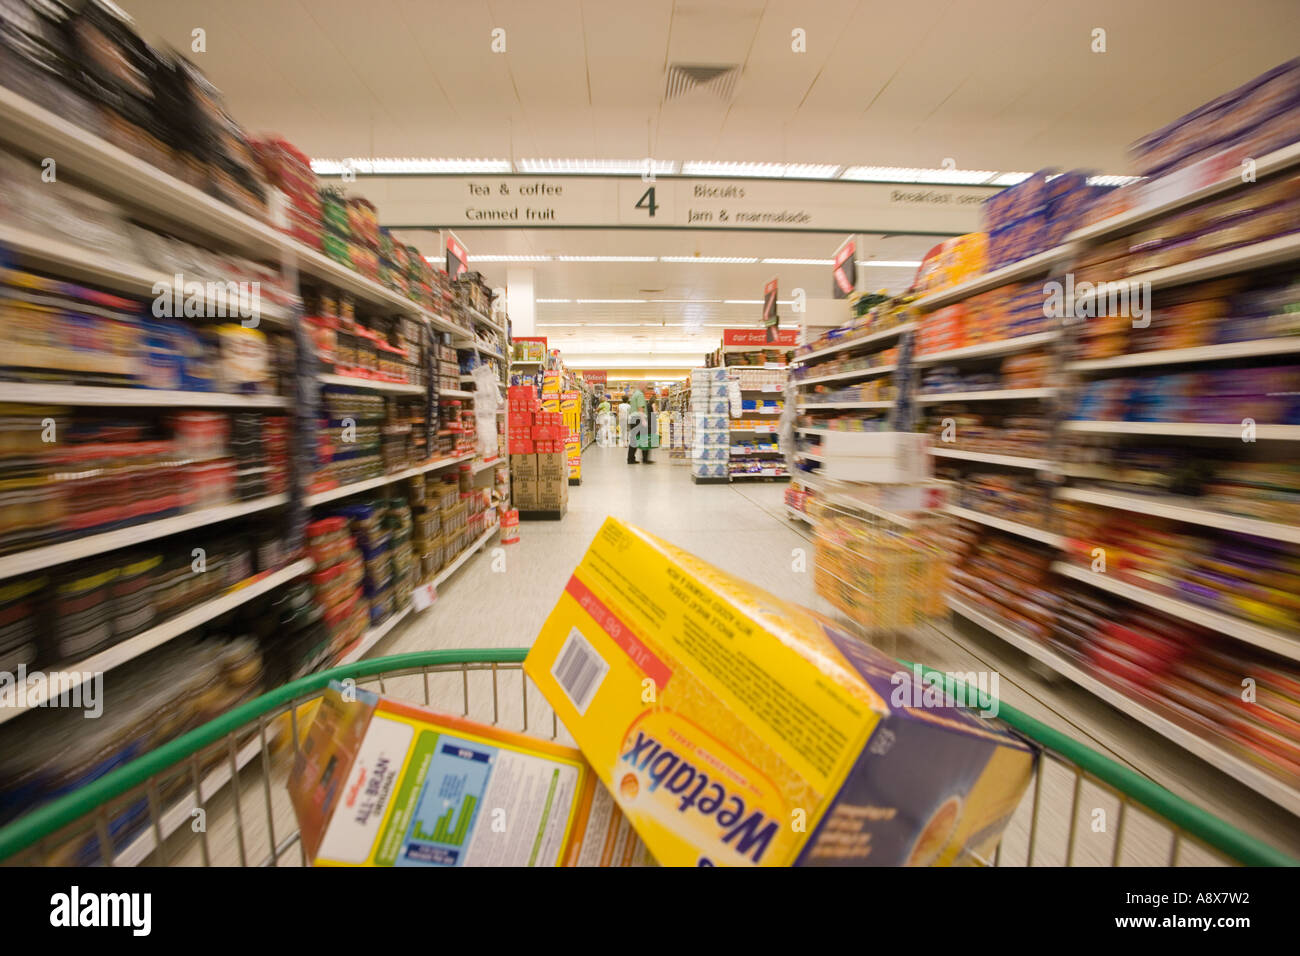 Supermarket trolley full of products in aisle.  Customer point of view. - Stock Image